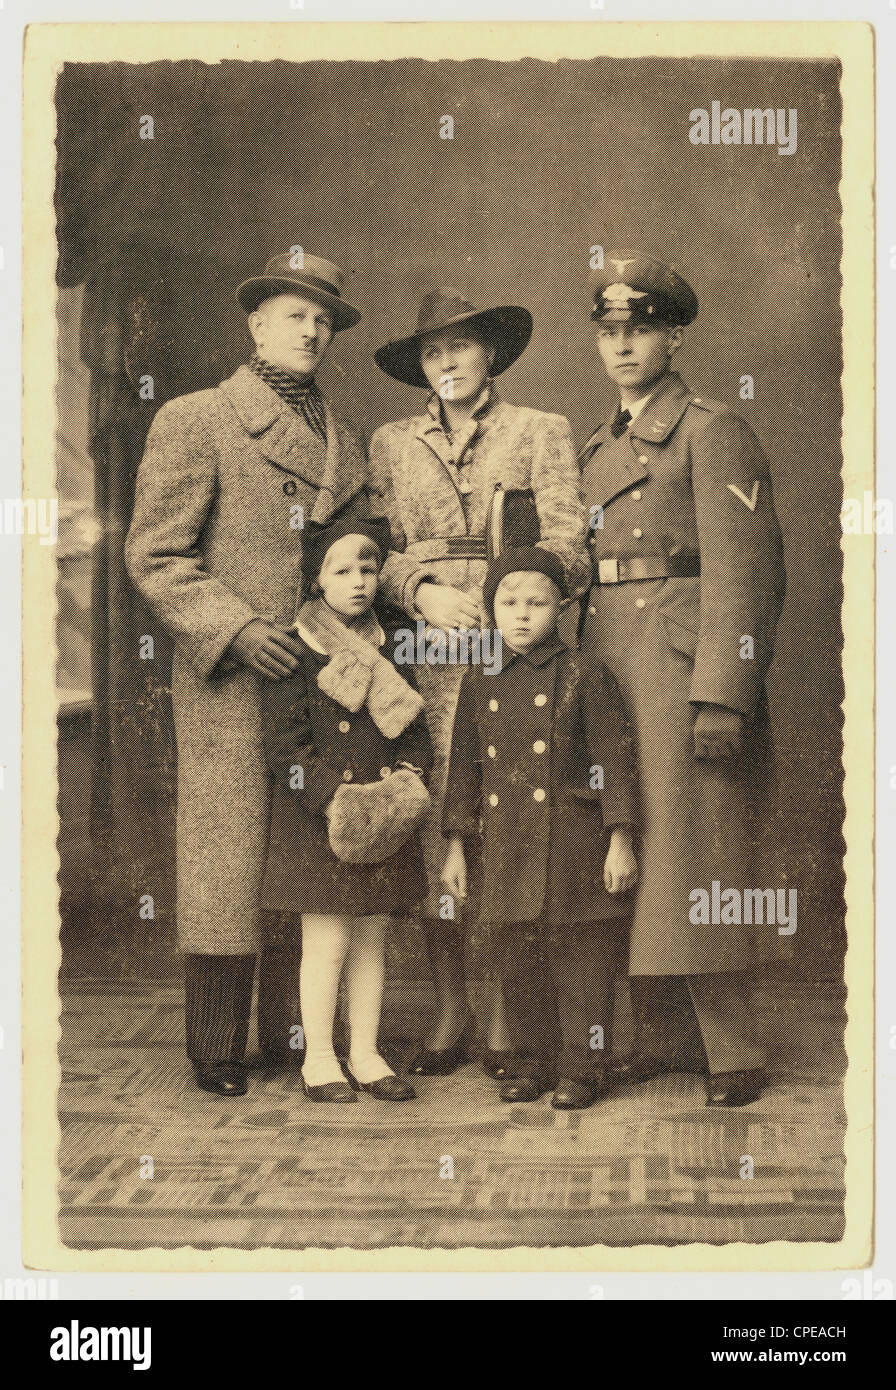 Postcard of family, probably German - the eldest son is in uniform, Luftwaffe, 1938, WWii) Germany Stock Photo